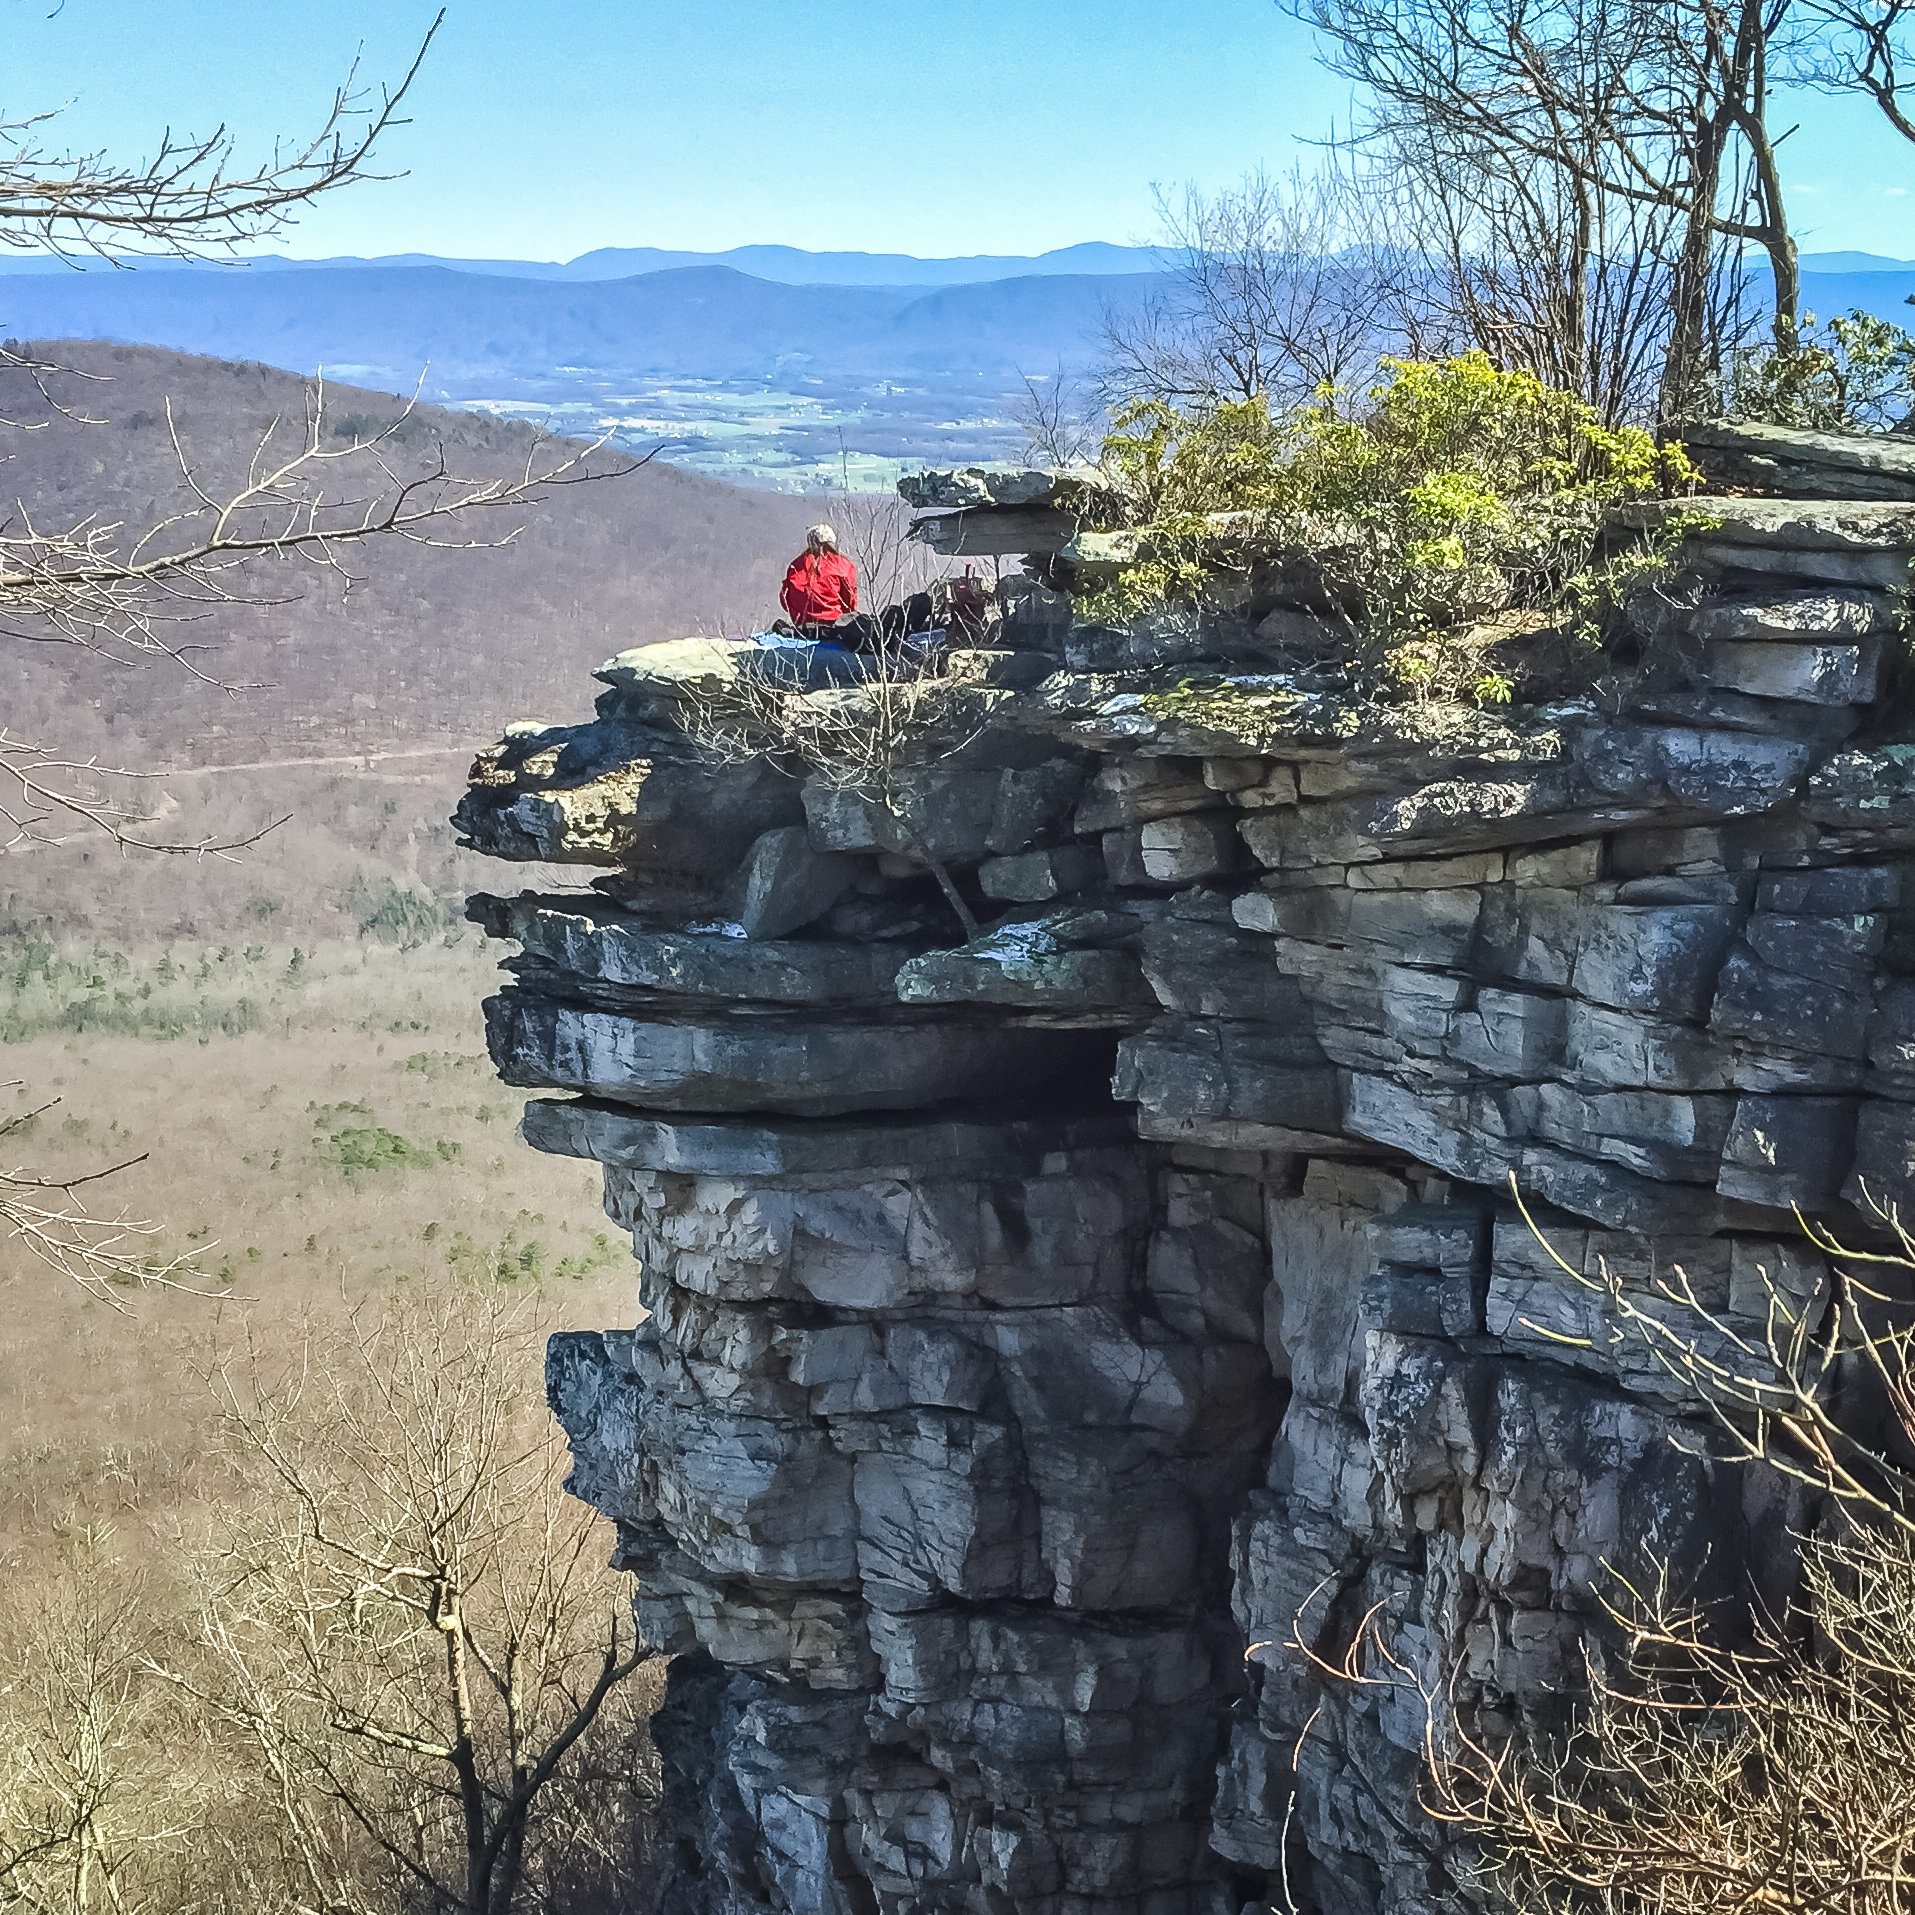 East view to Massanutten and Shenandoah mountains